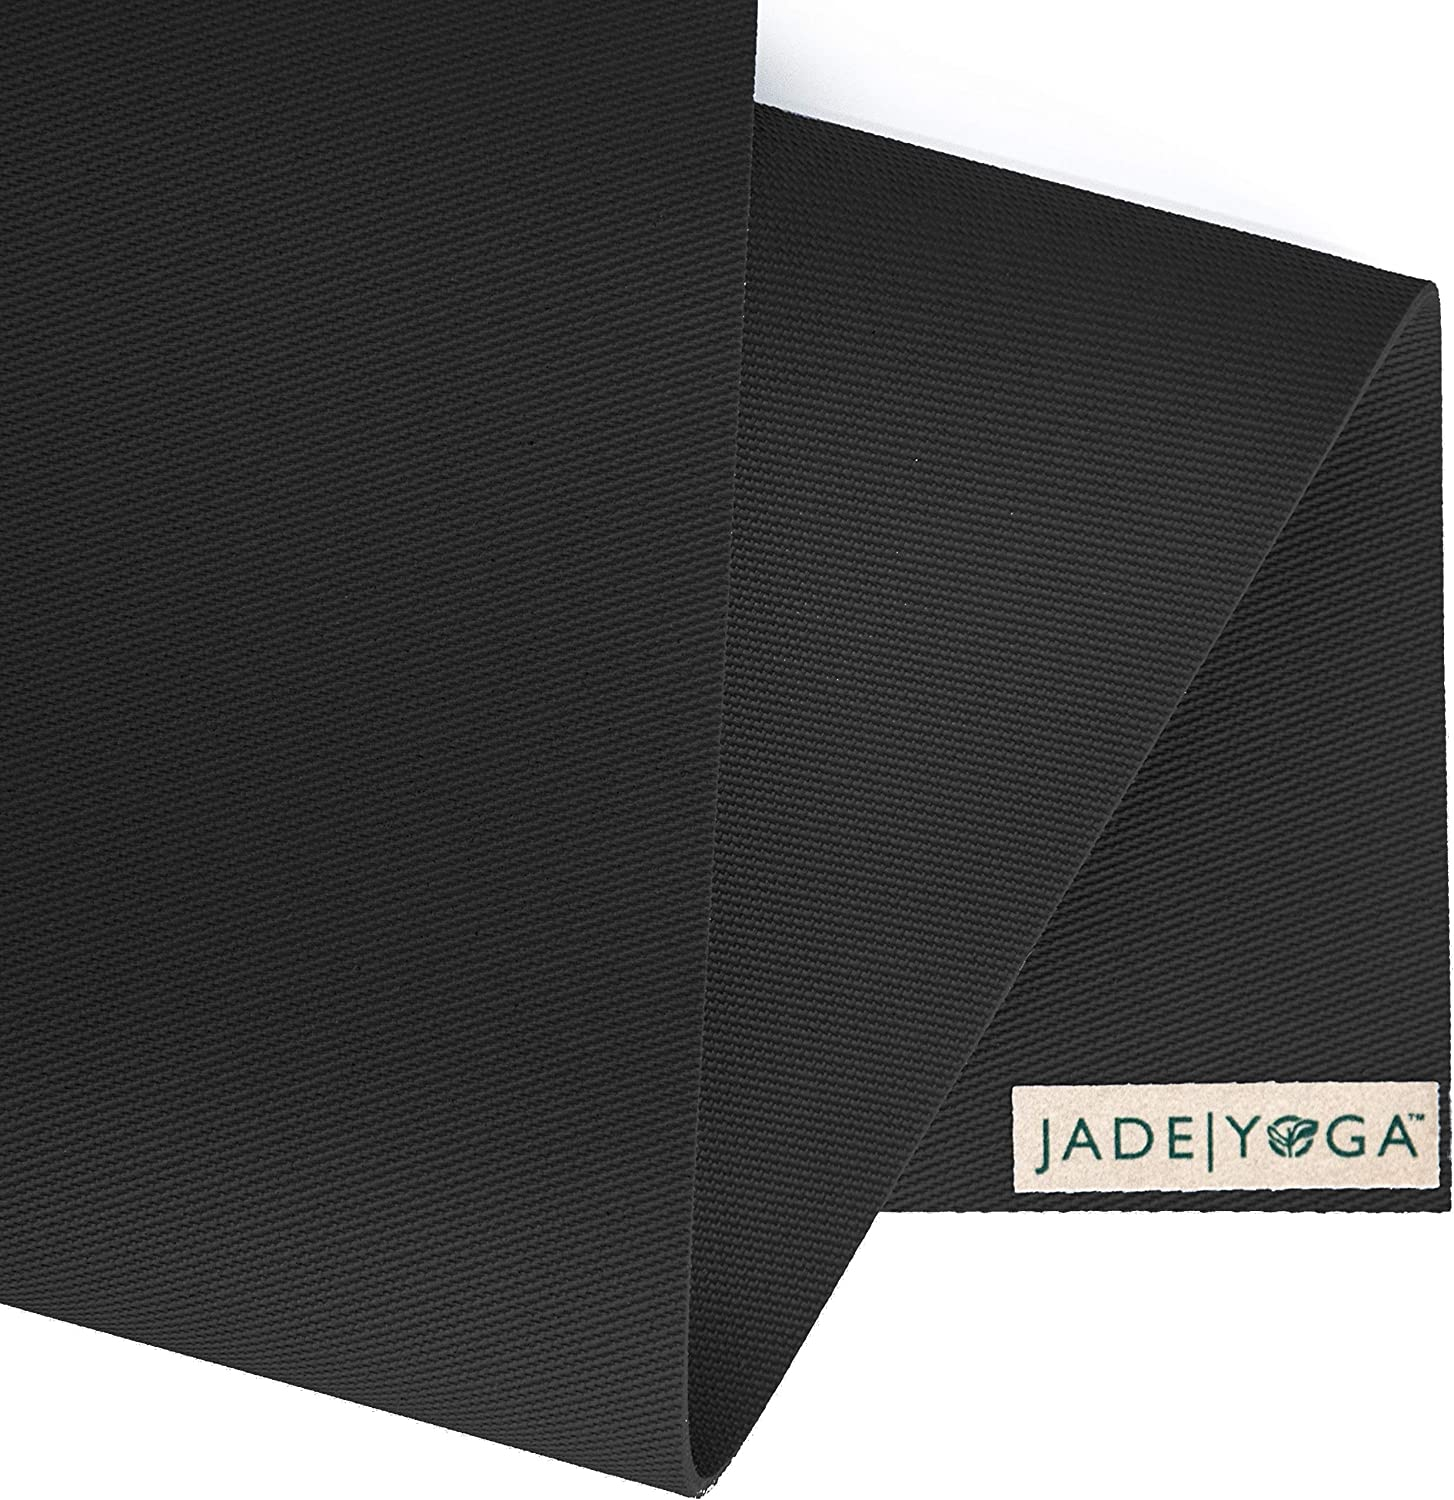 Harmony Yoga Mat Yoga Mat Designed to Provide A Secure Grip to Help Hold Your Pose Jade Yoga